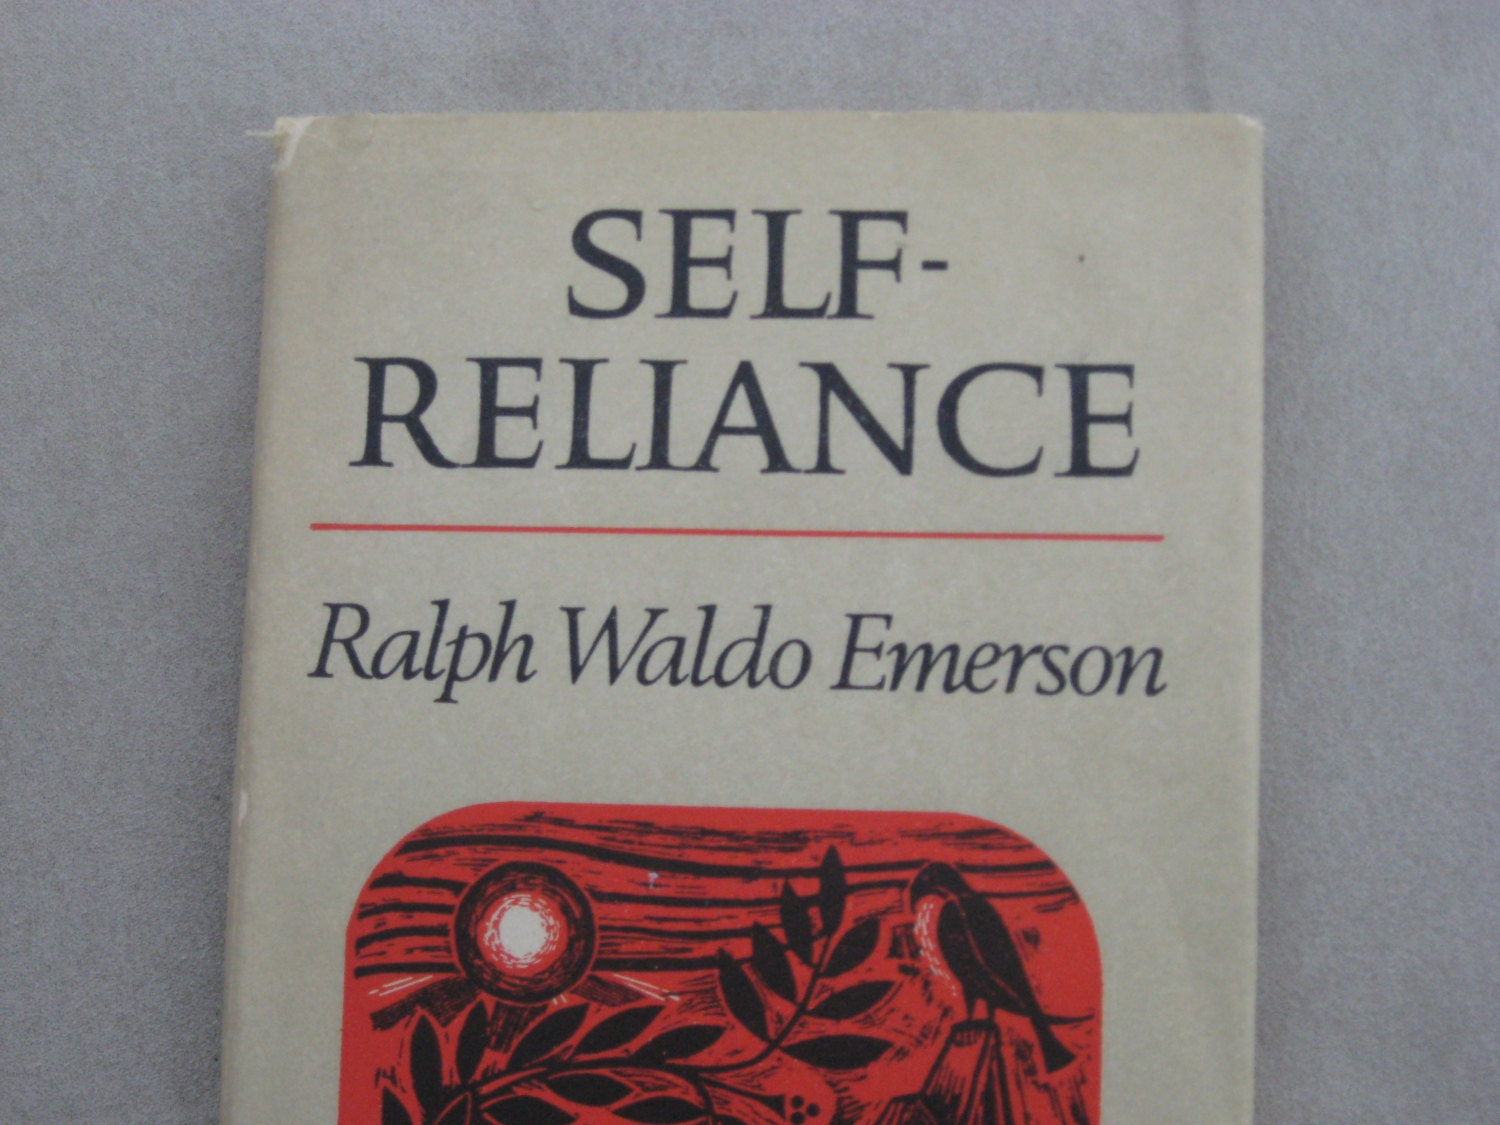 emerson self reliance essay 2 Mcgee lectures emerson's self reliance mcgee lectures emerson's self reliance skip navigation  self reliance, by ralph waldo emerson, essay audiobook, classic literature - duration: 1:07:57.